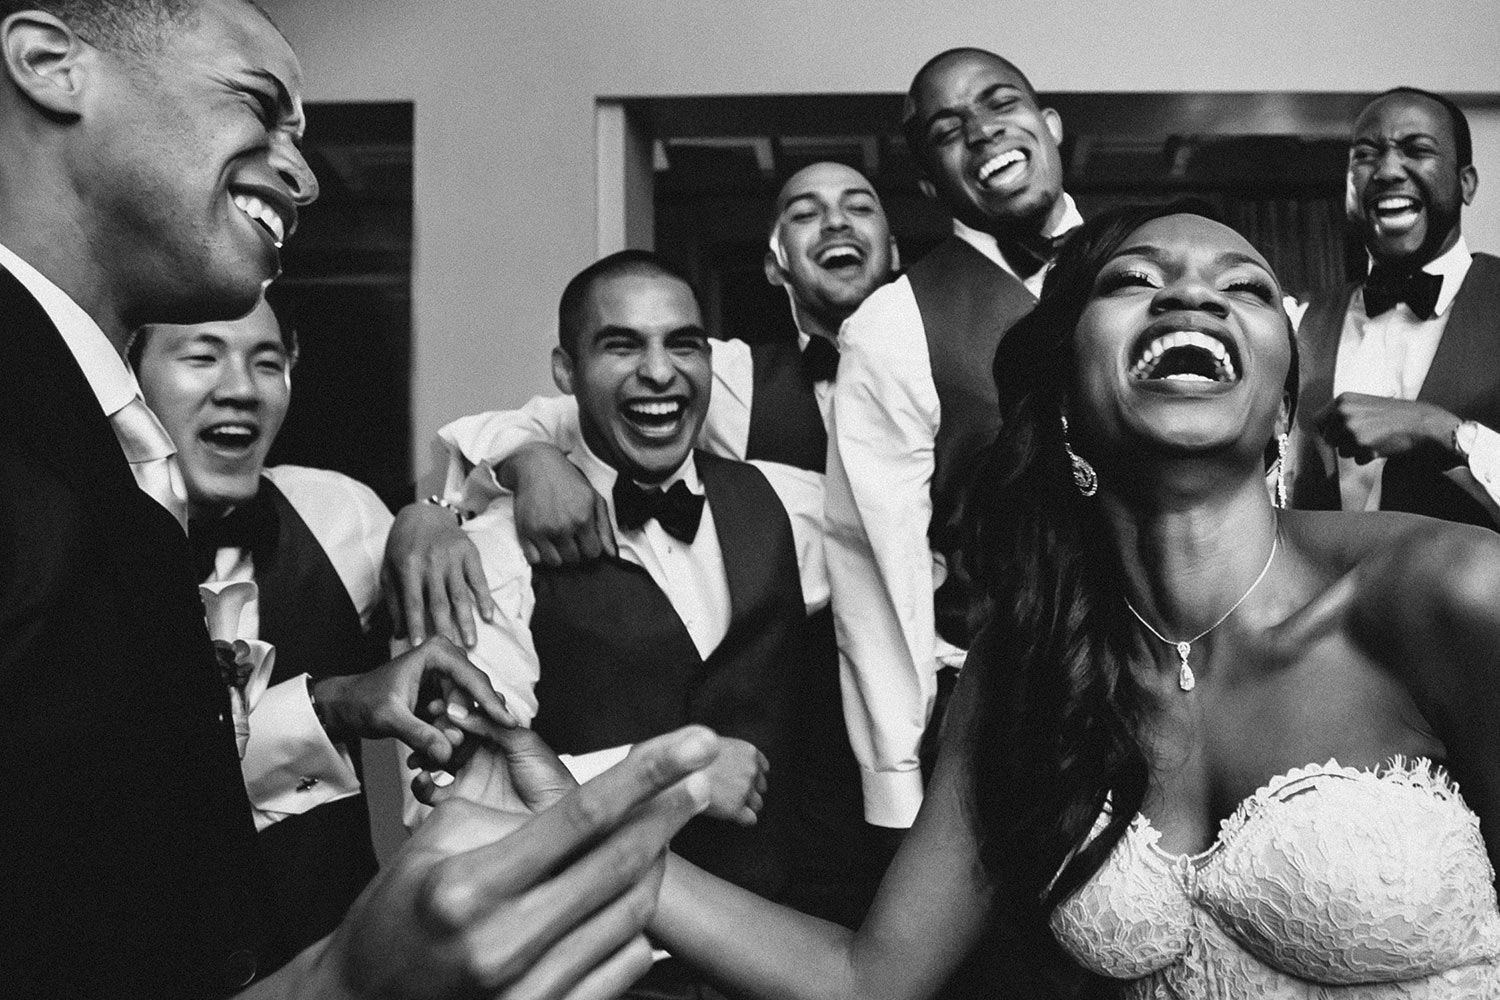 Joyous bride celebrates with groom and groomsmen - photographed by Callaway Gable